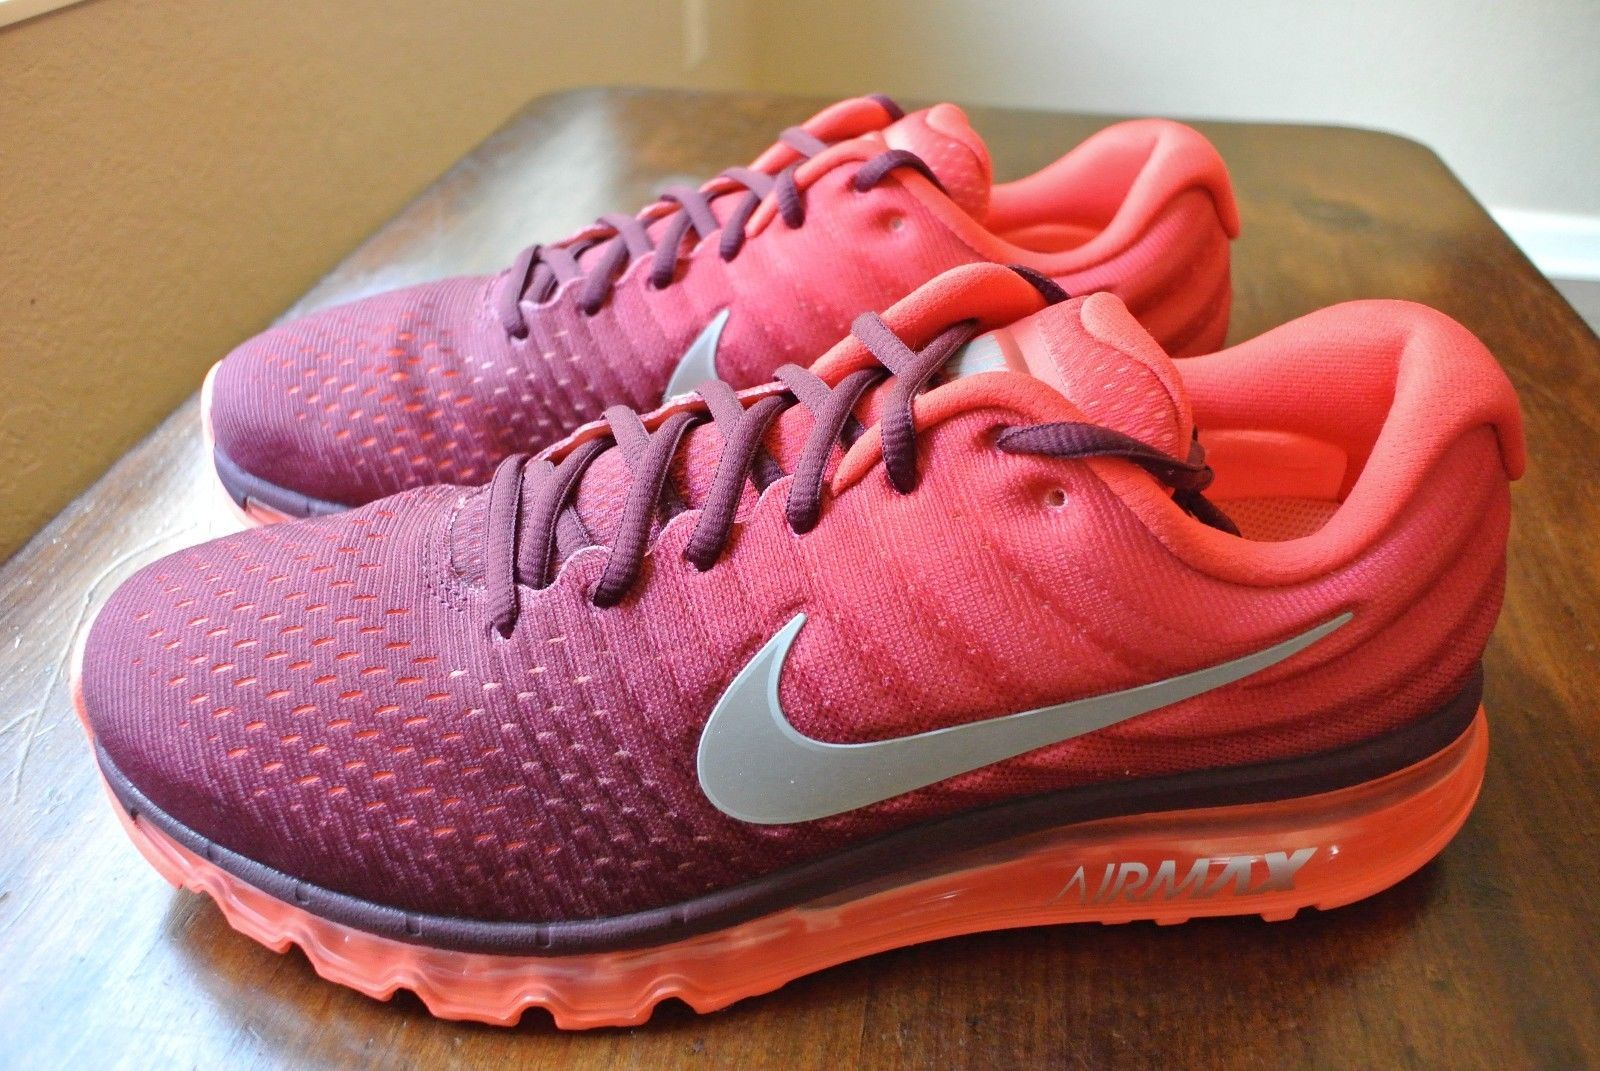 Nike Men's Shoes Air Max 2017 Running SNEAKERS Maroon Red